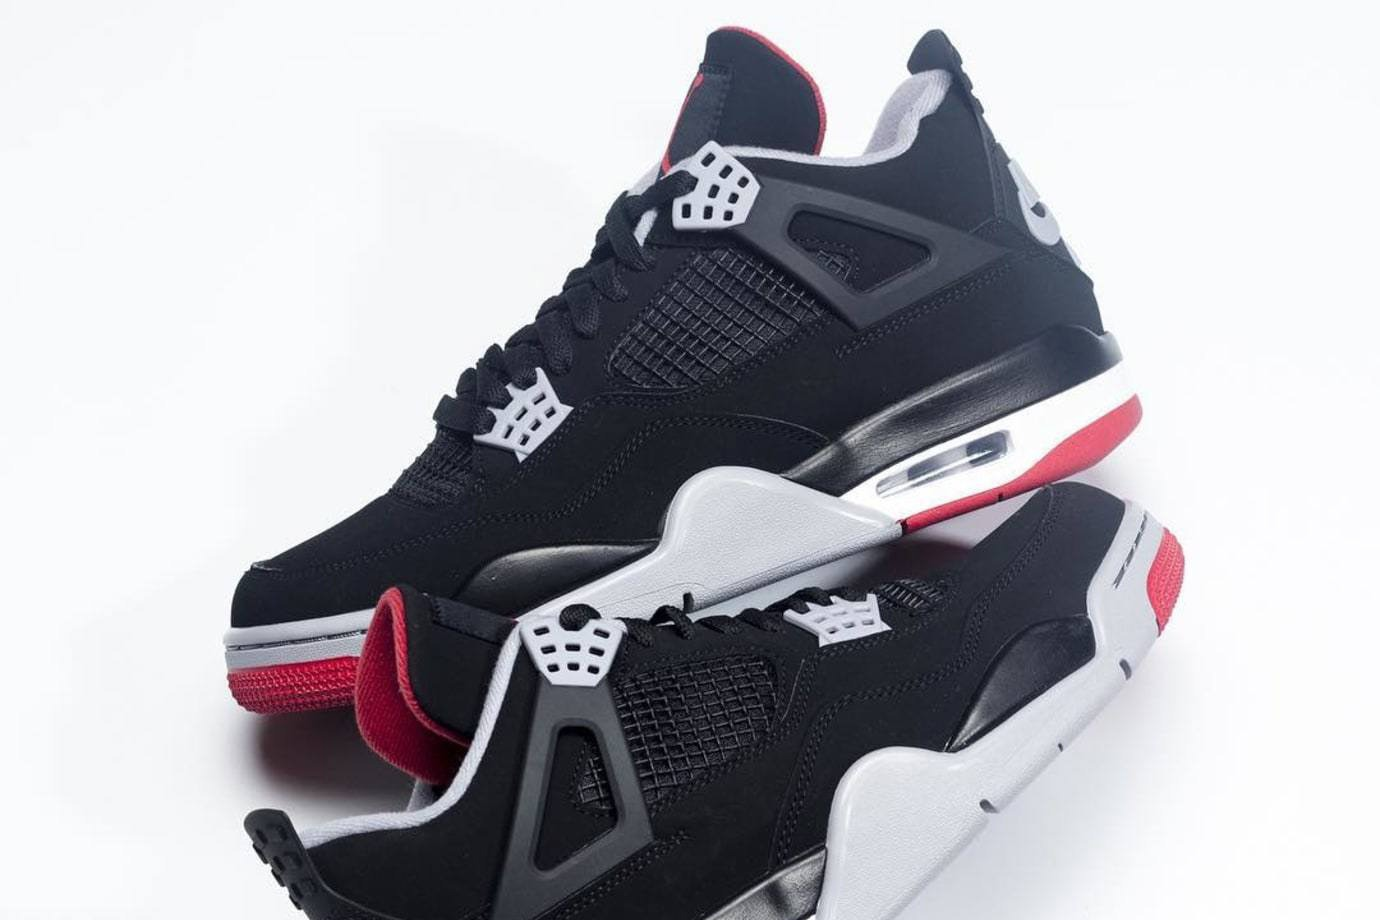 separation shoes 8c73b 786ae Jordan Brand is celebrating the 30th anniversary of the Air Jordan IV by  reissuing the 1989 silhouette in classic black and red form.